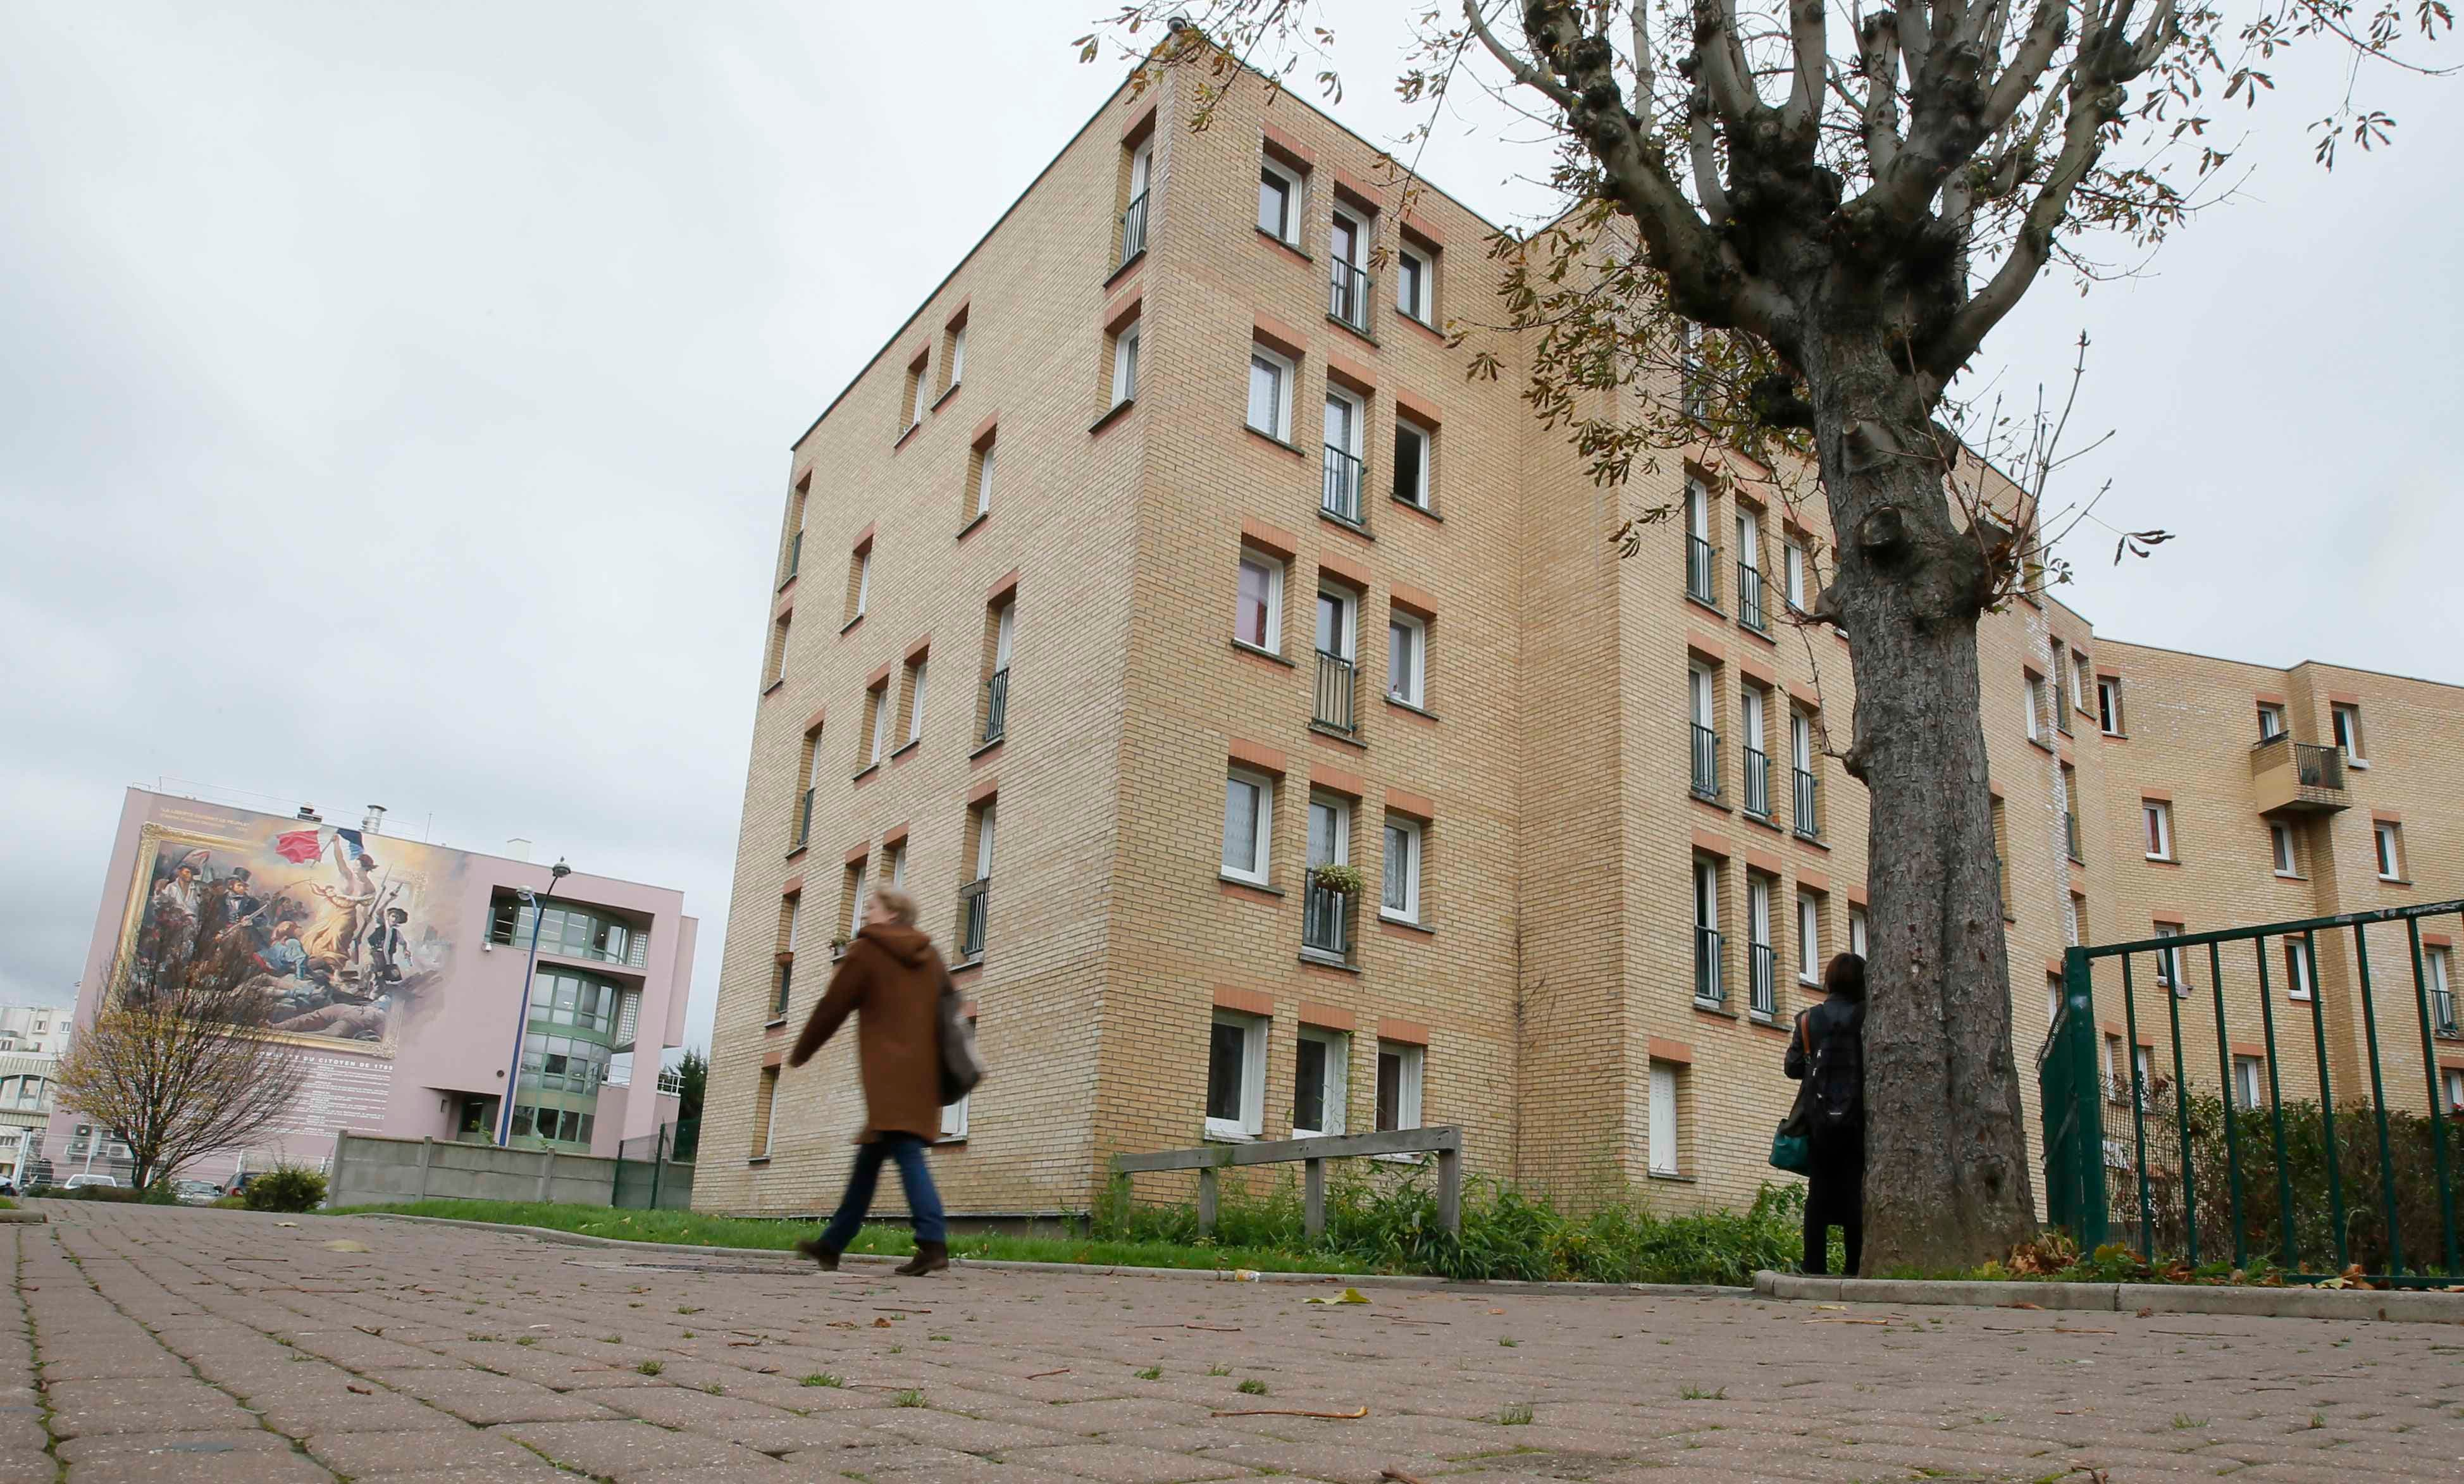 A general view shows the apartment block where Samy Amimour, one of the attackers identified by police, grew up in the Parisian suburb of Drancy, France, November 17, 2015.